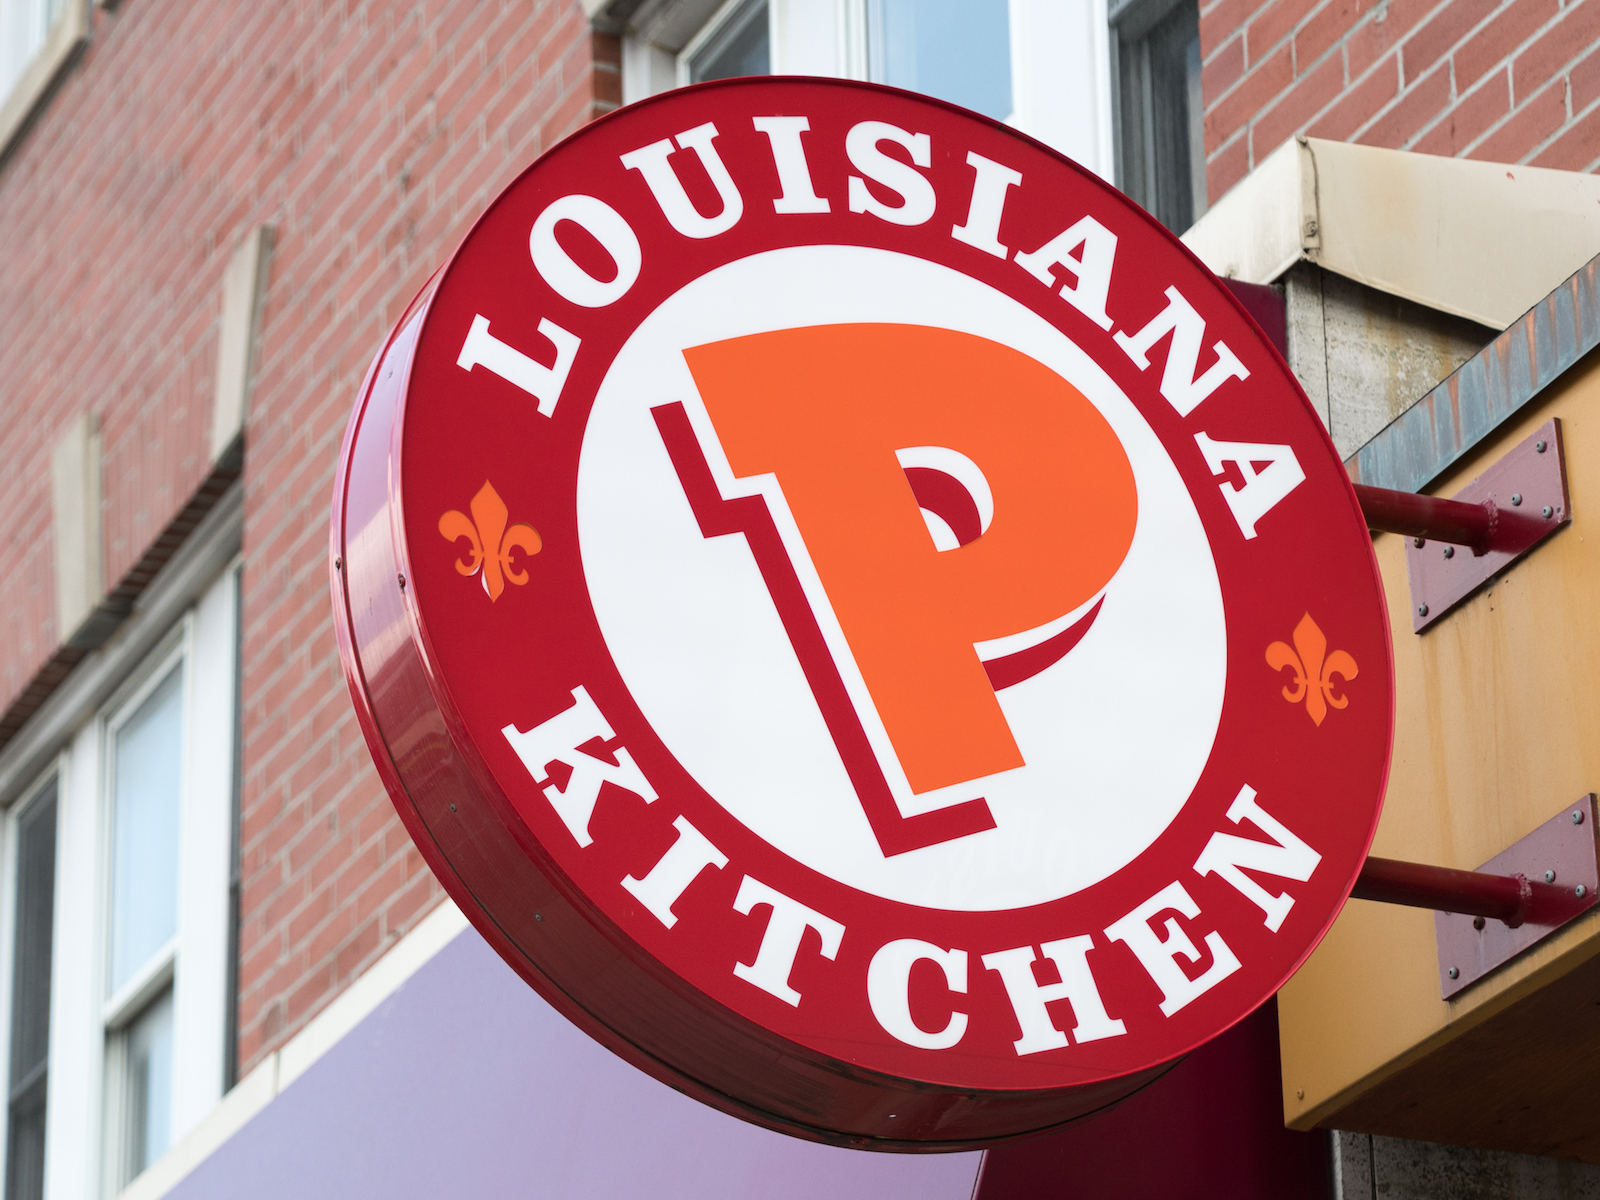 California restaurant admits serving Popeye's chicken